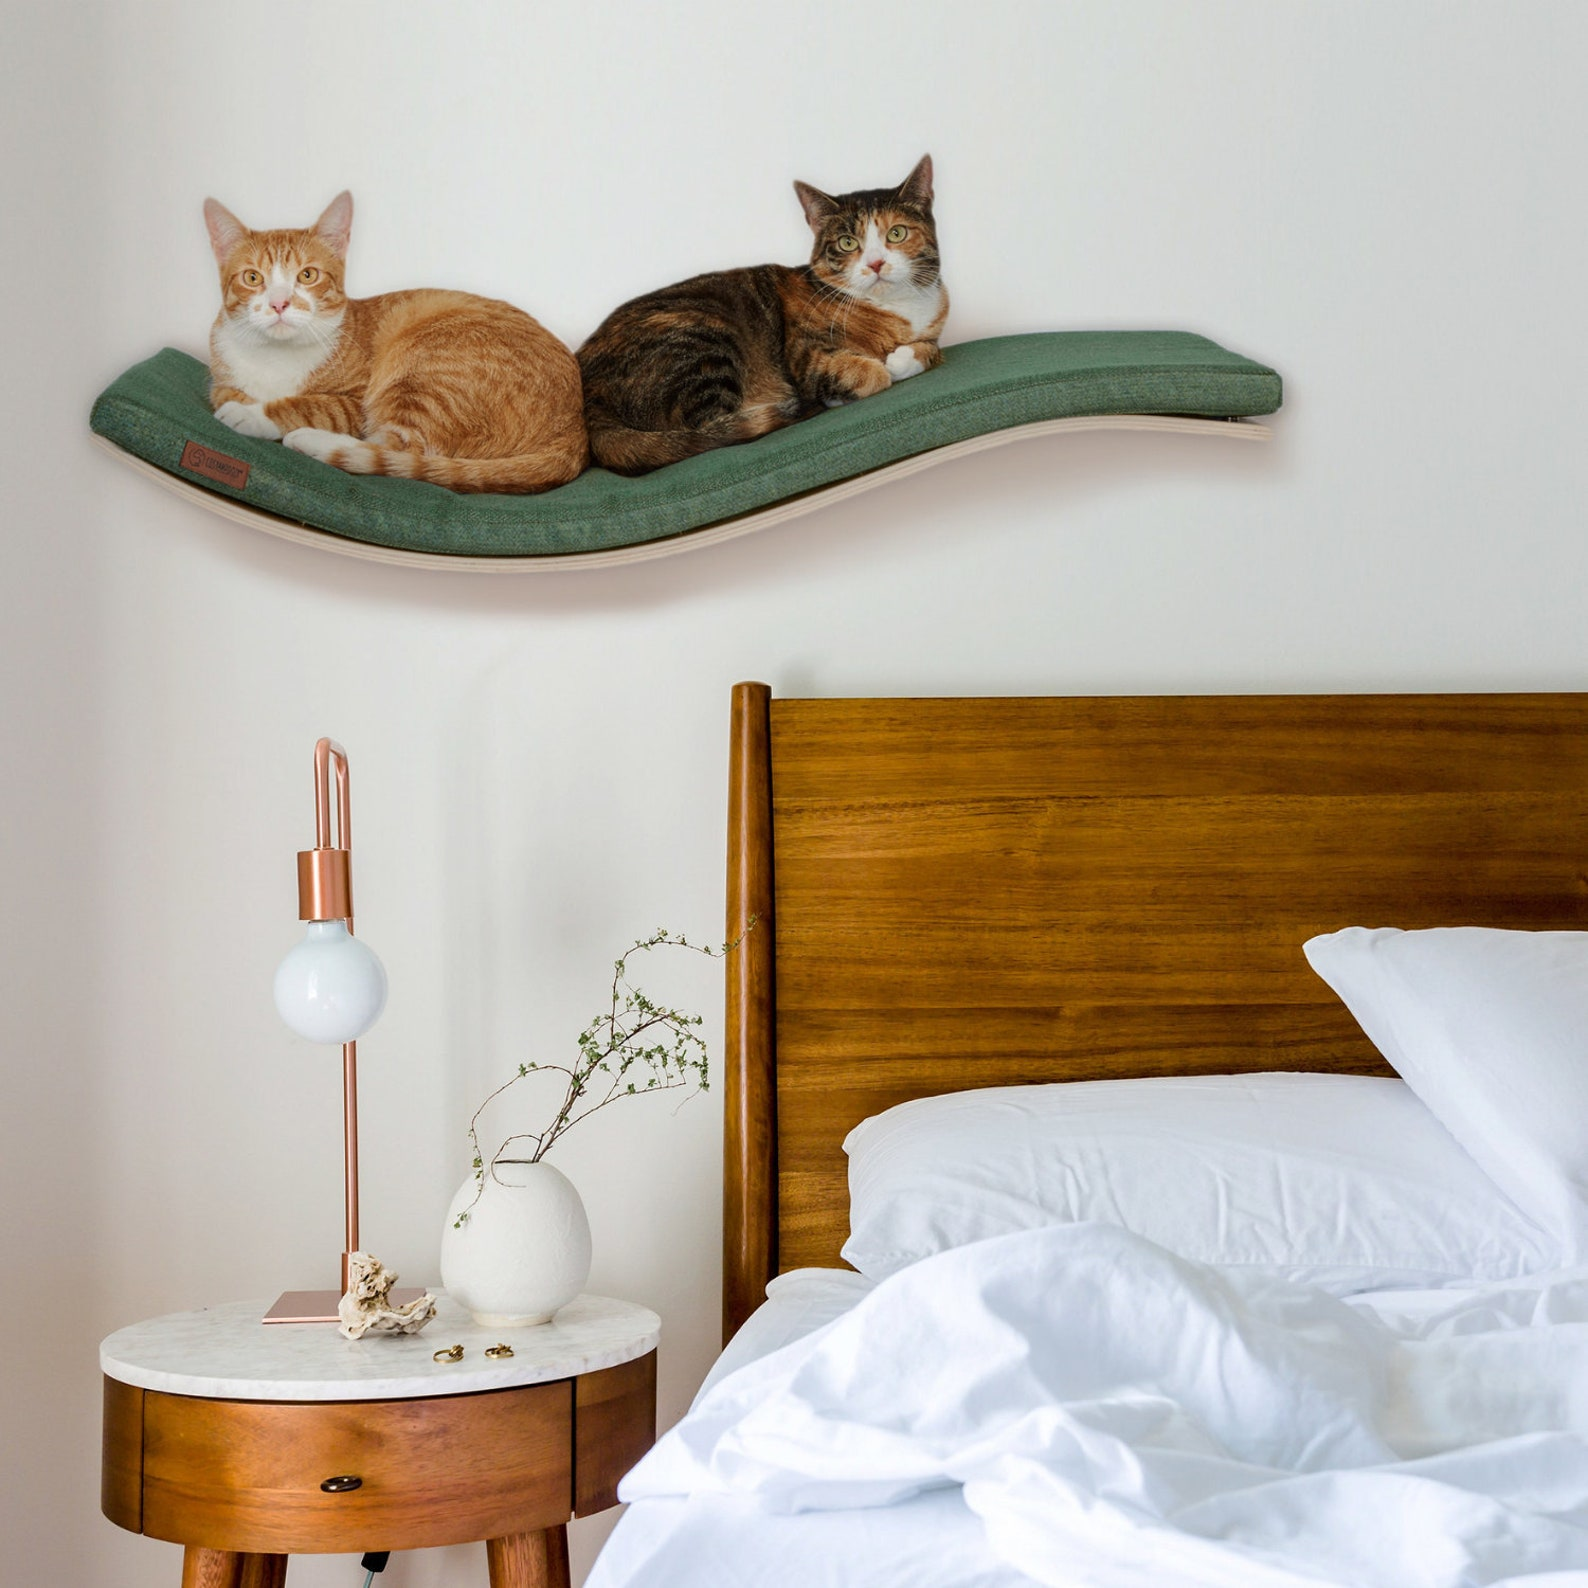 high design wall mounted cat bad